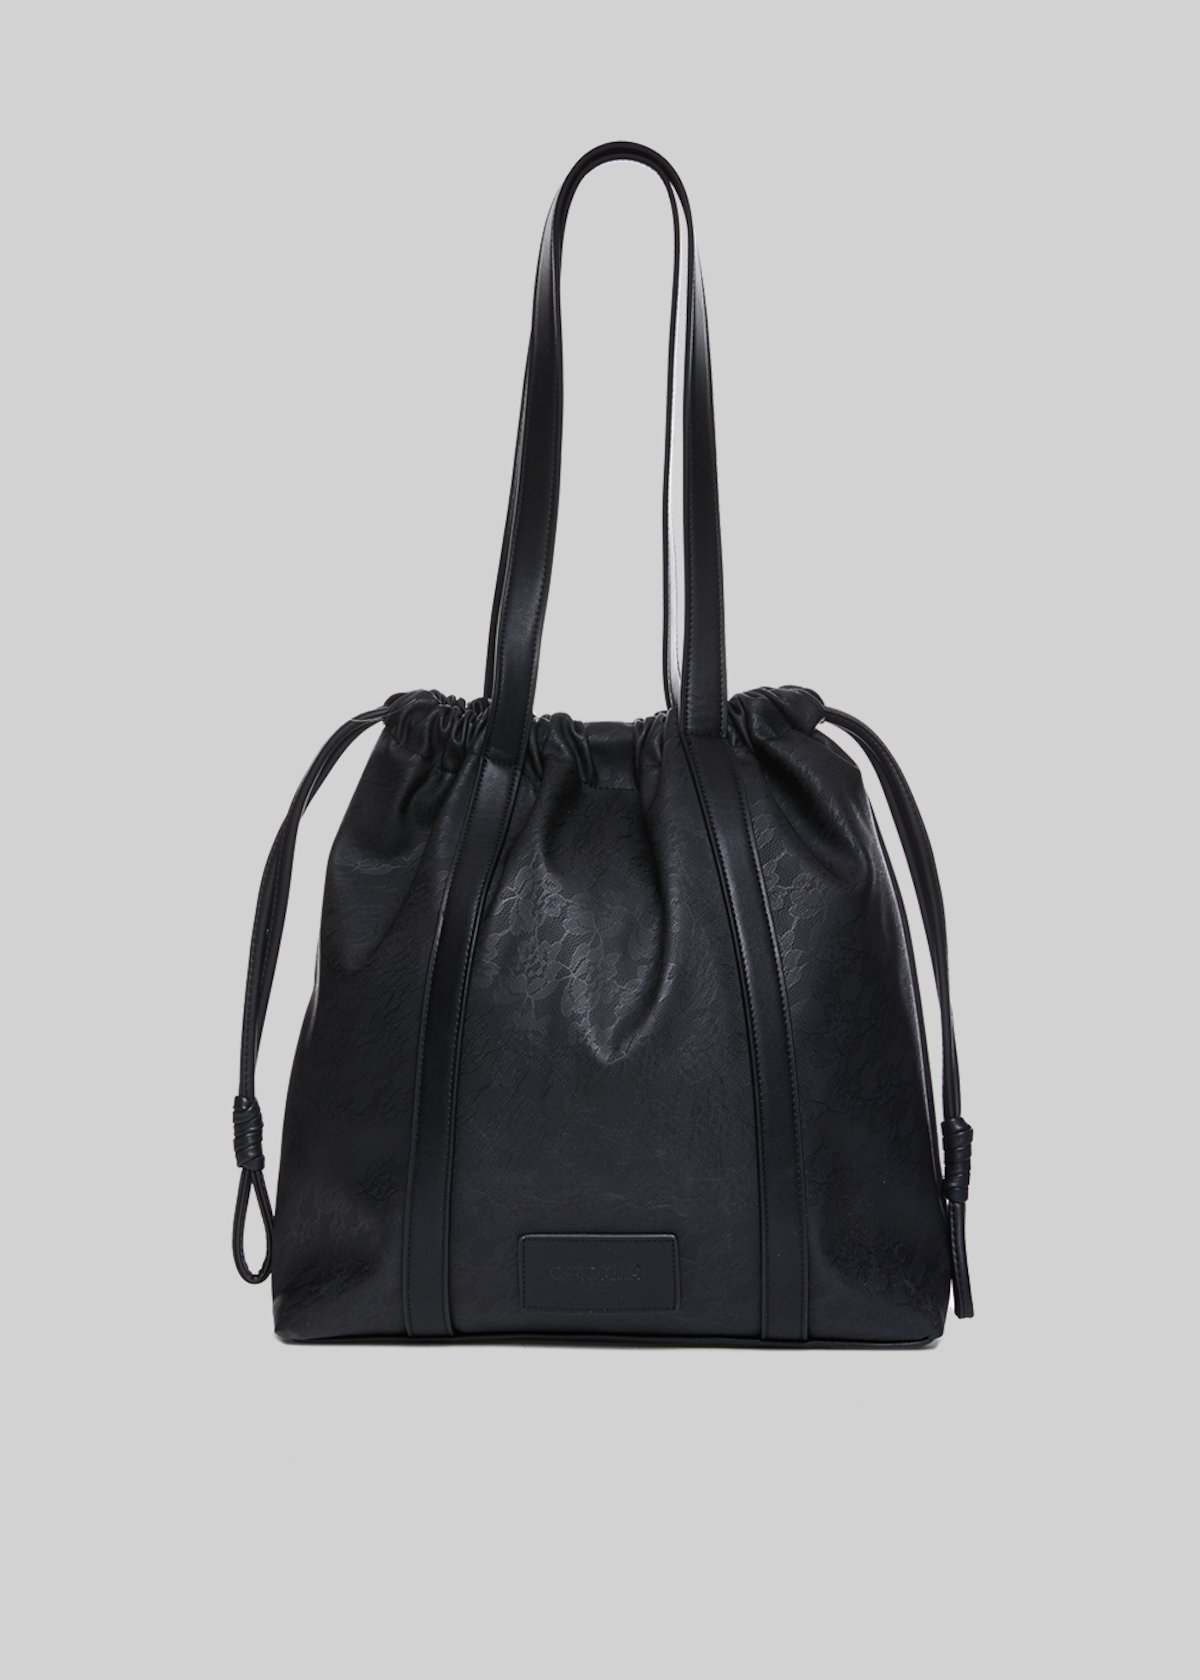 Binnie bag in faux leather with drawstring